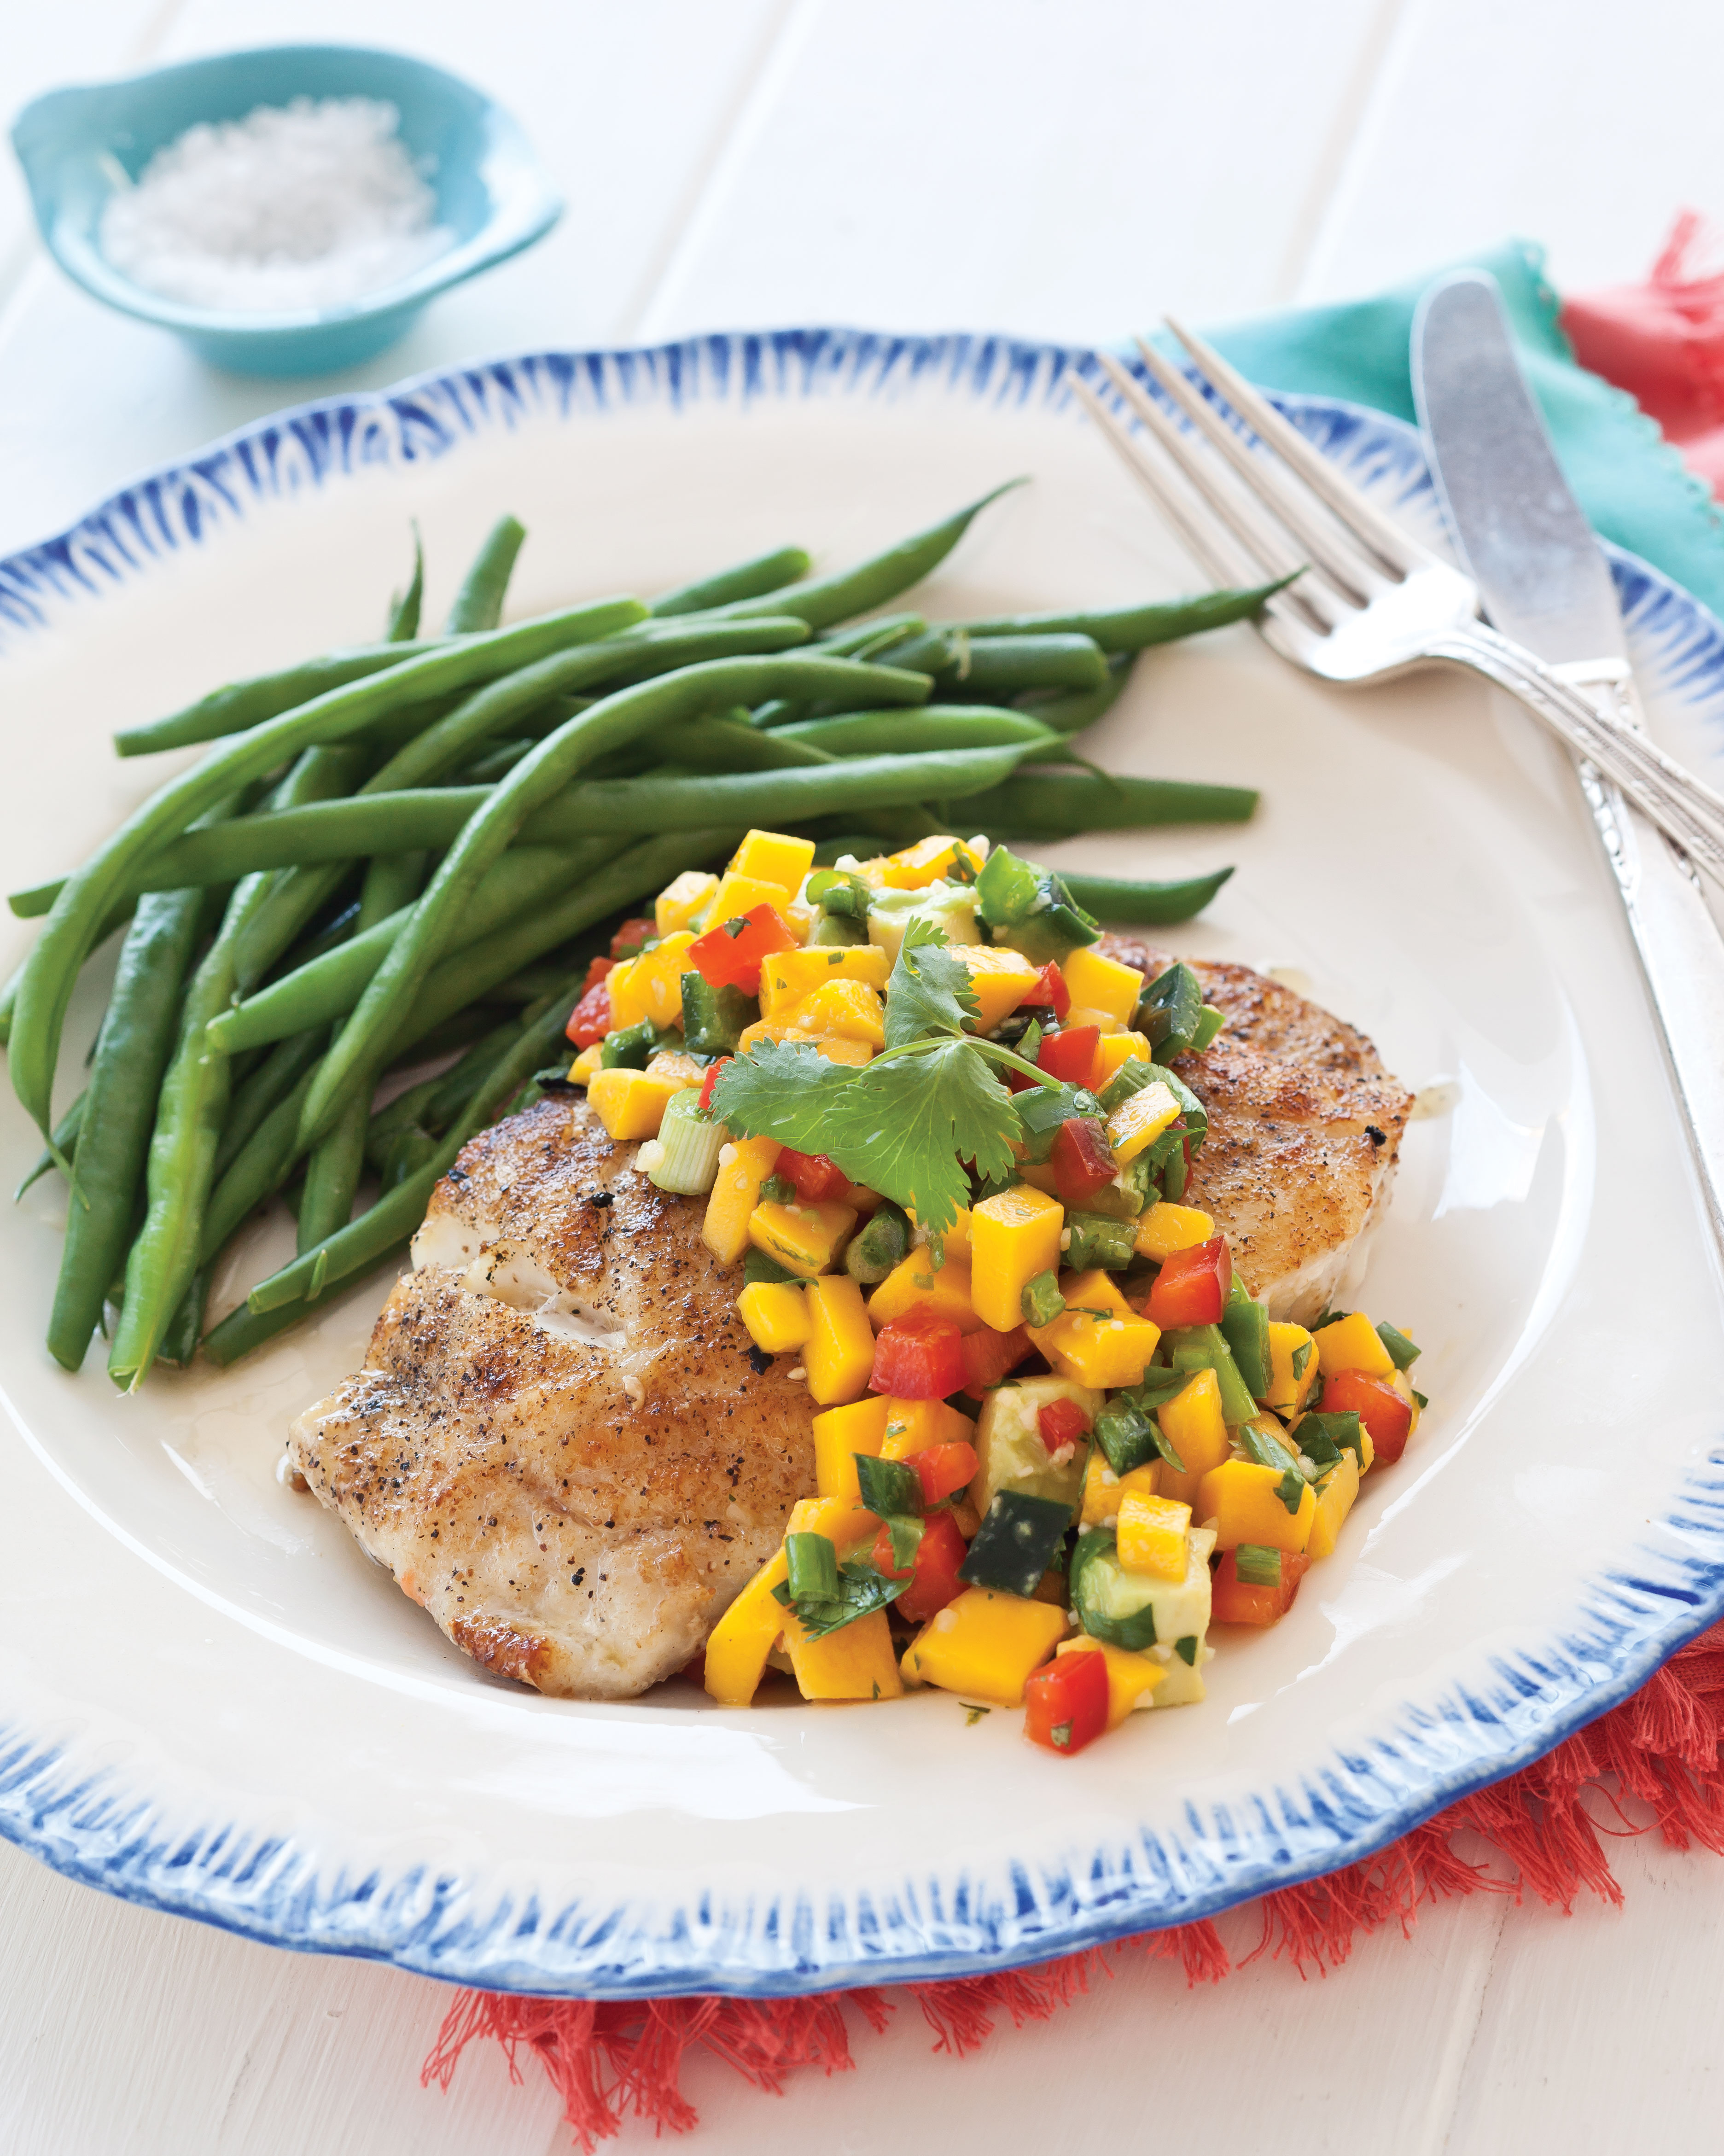 Summer Cookout Recipes, Grilled Grouper with Mango Salsa